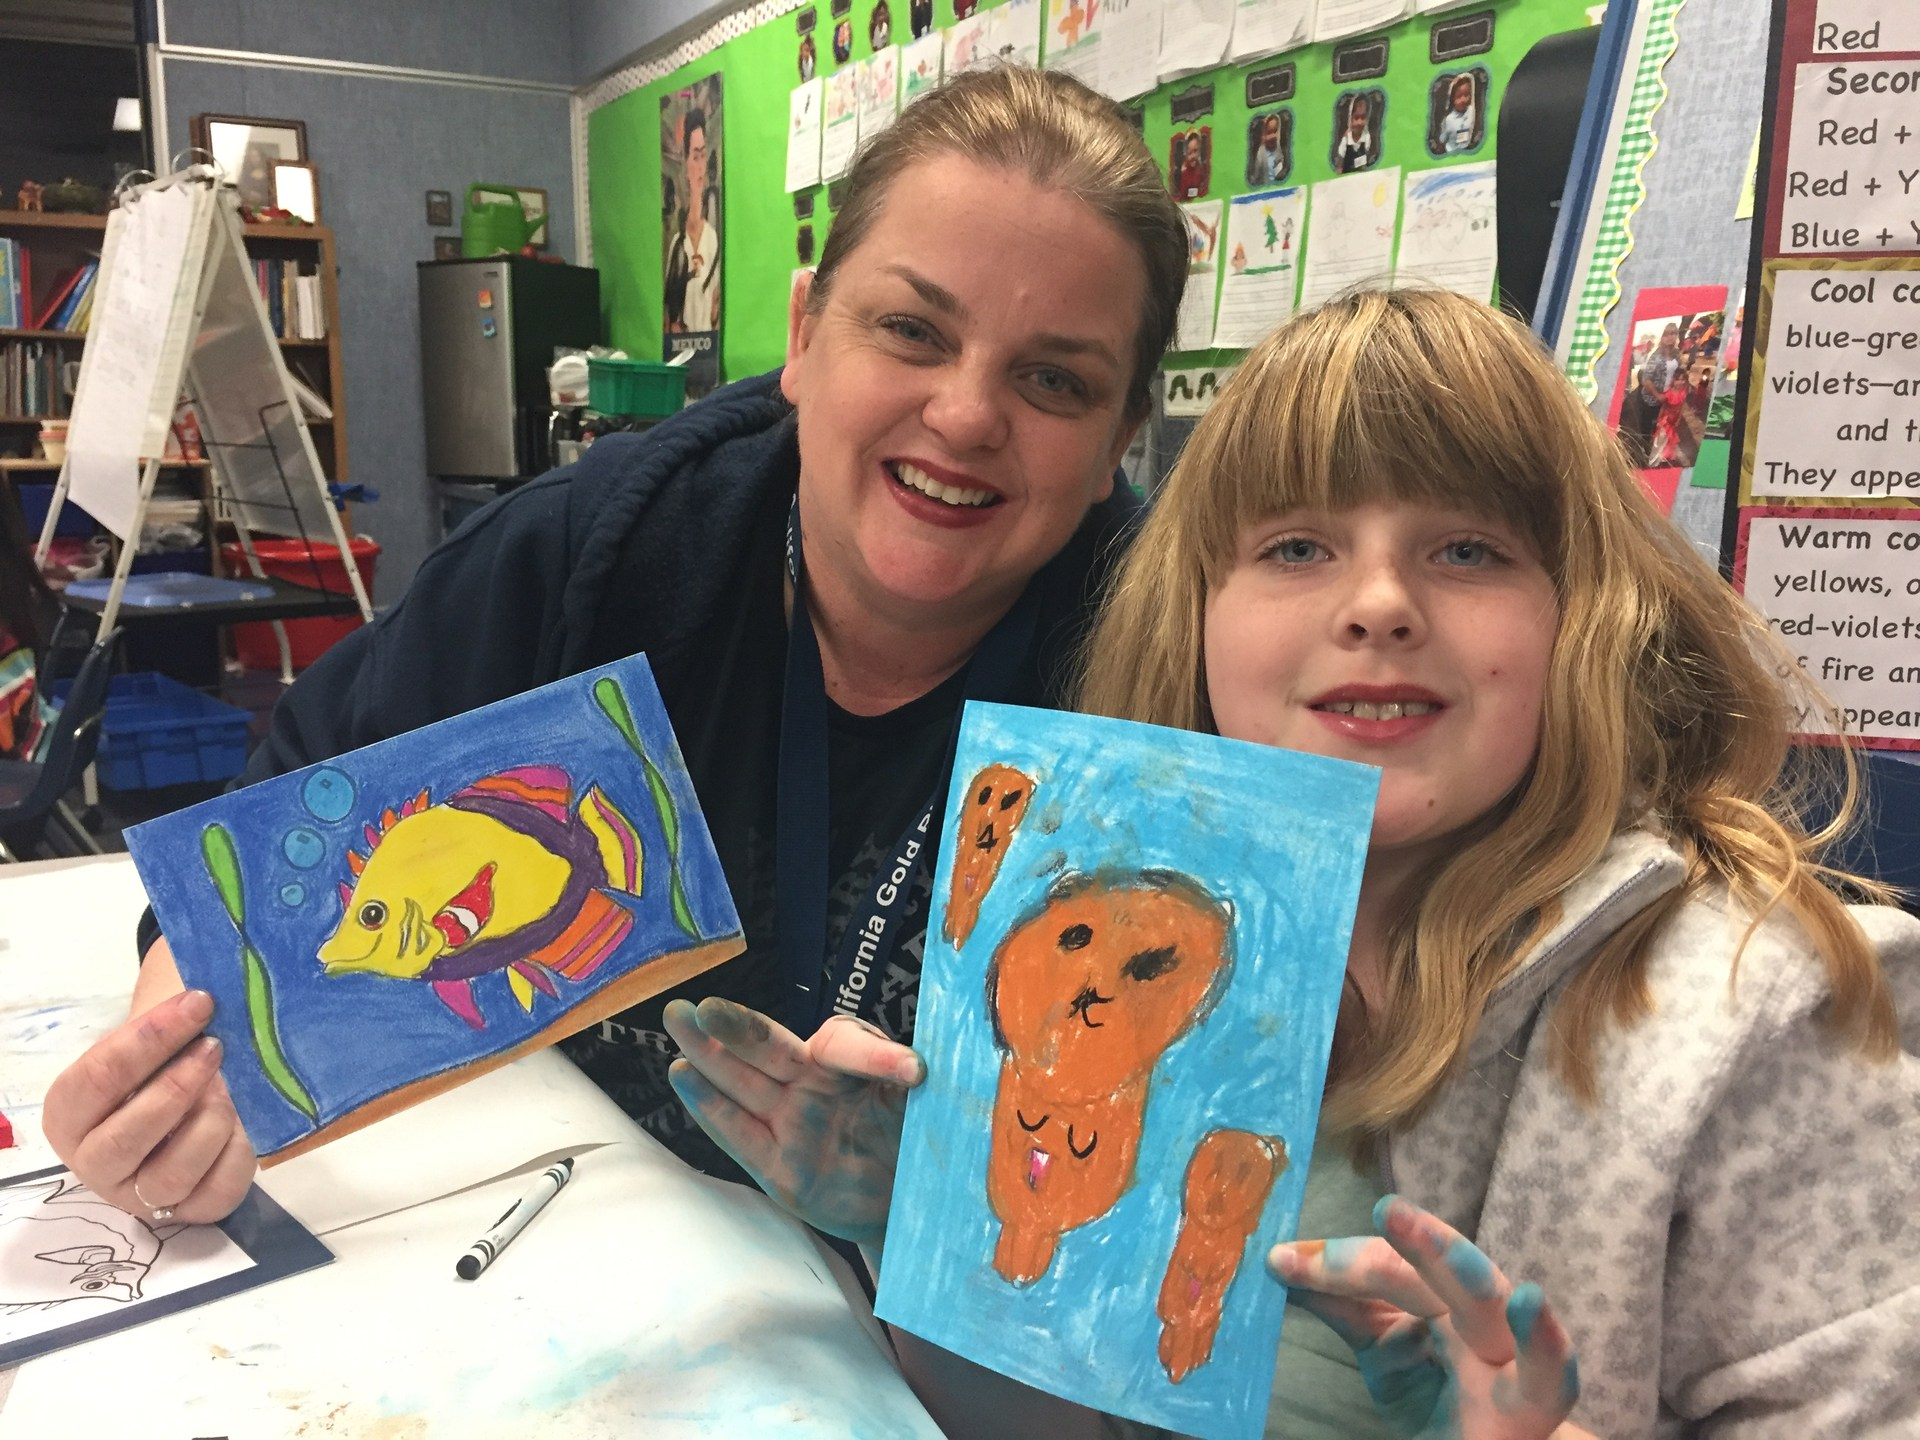 Mother and daughter with art work.